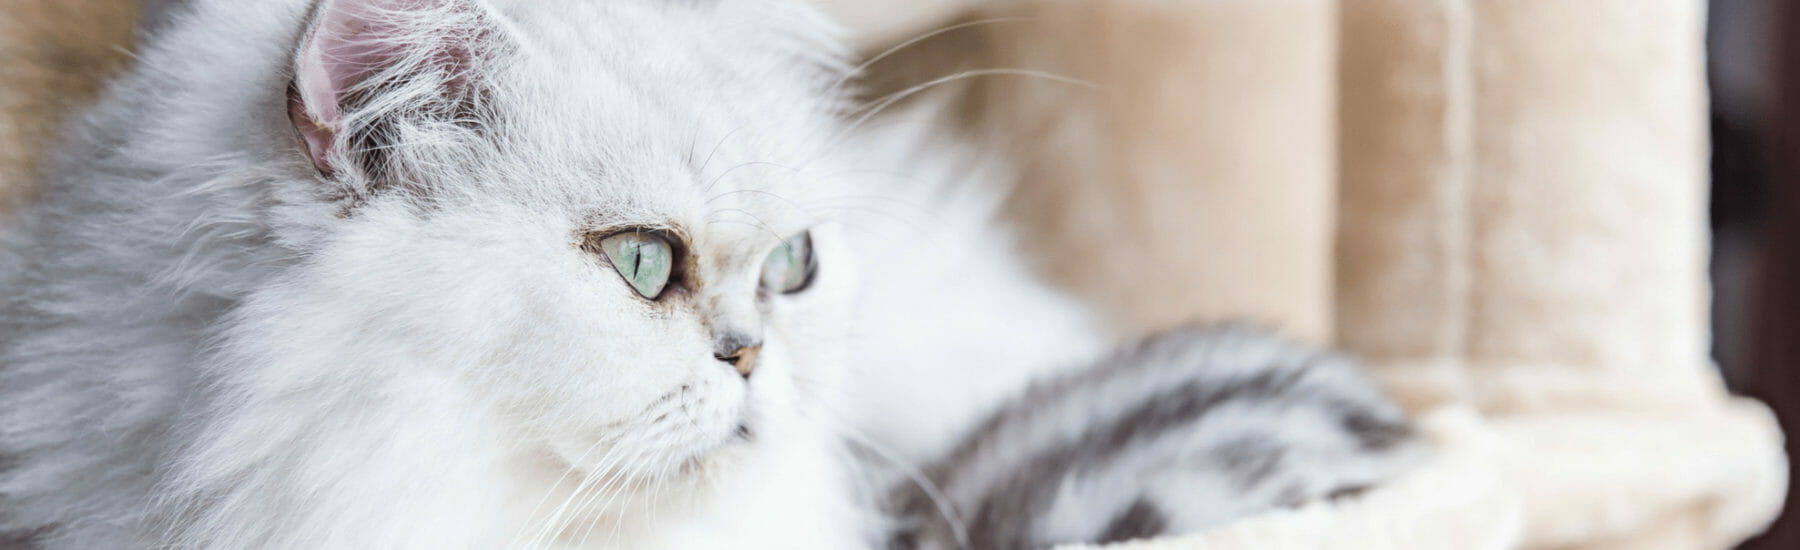 Side image of white cat looking to the right